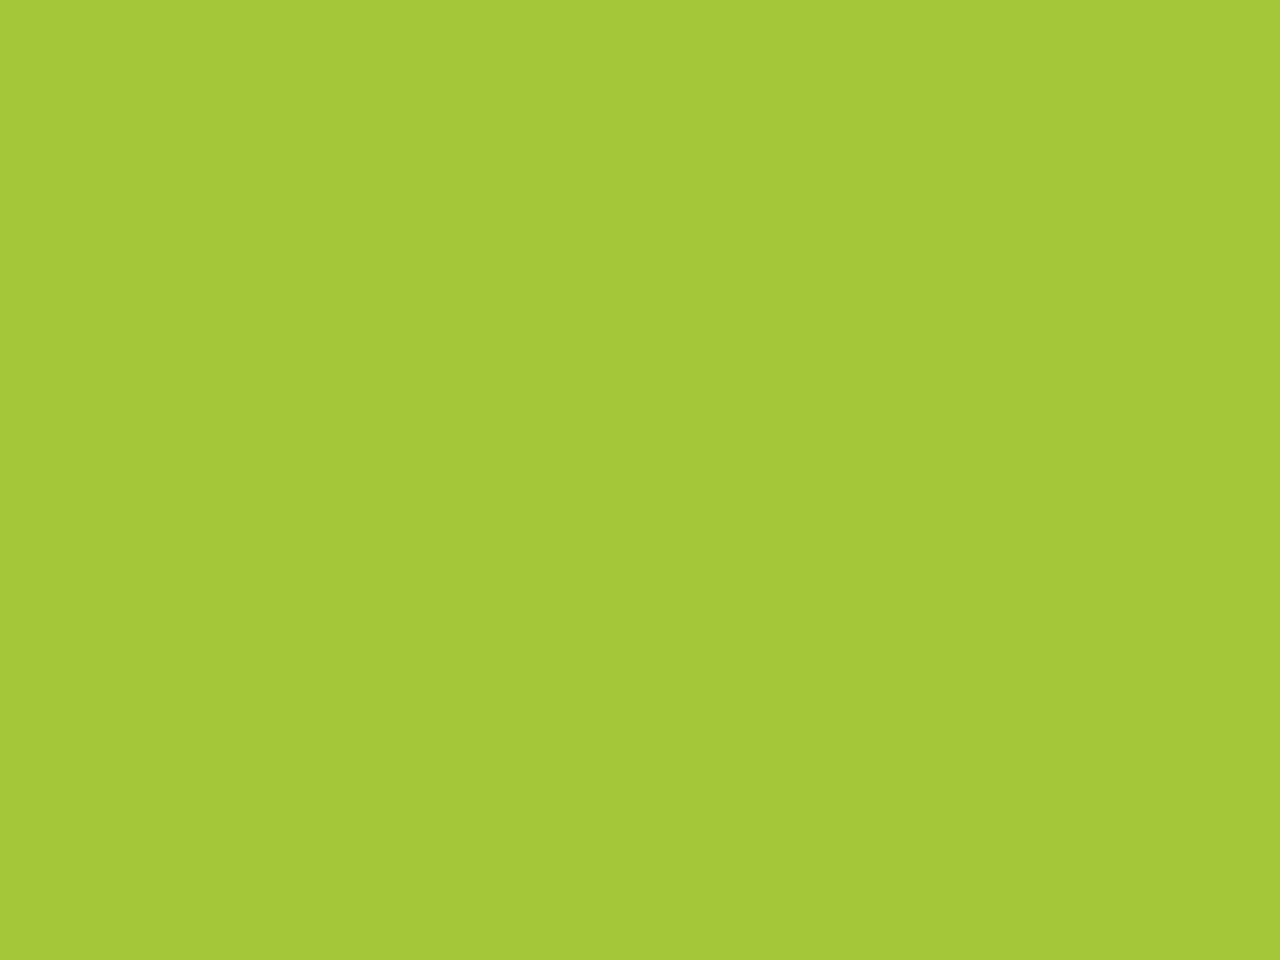 1280x960 Android Green Solid Color Background